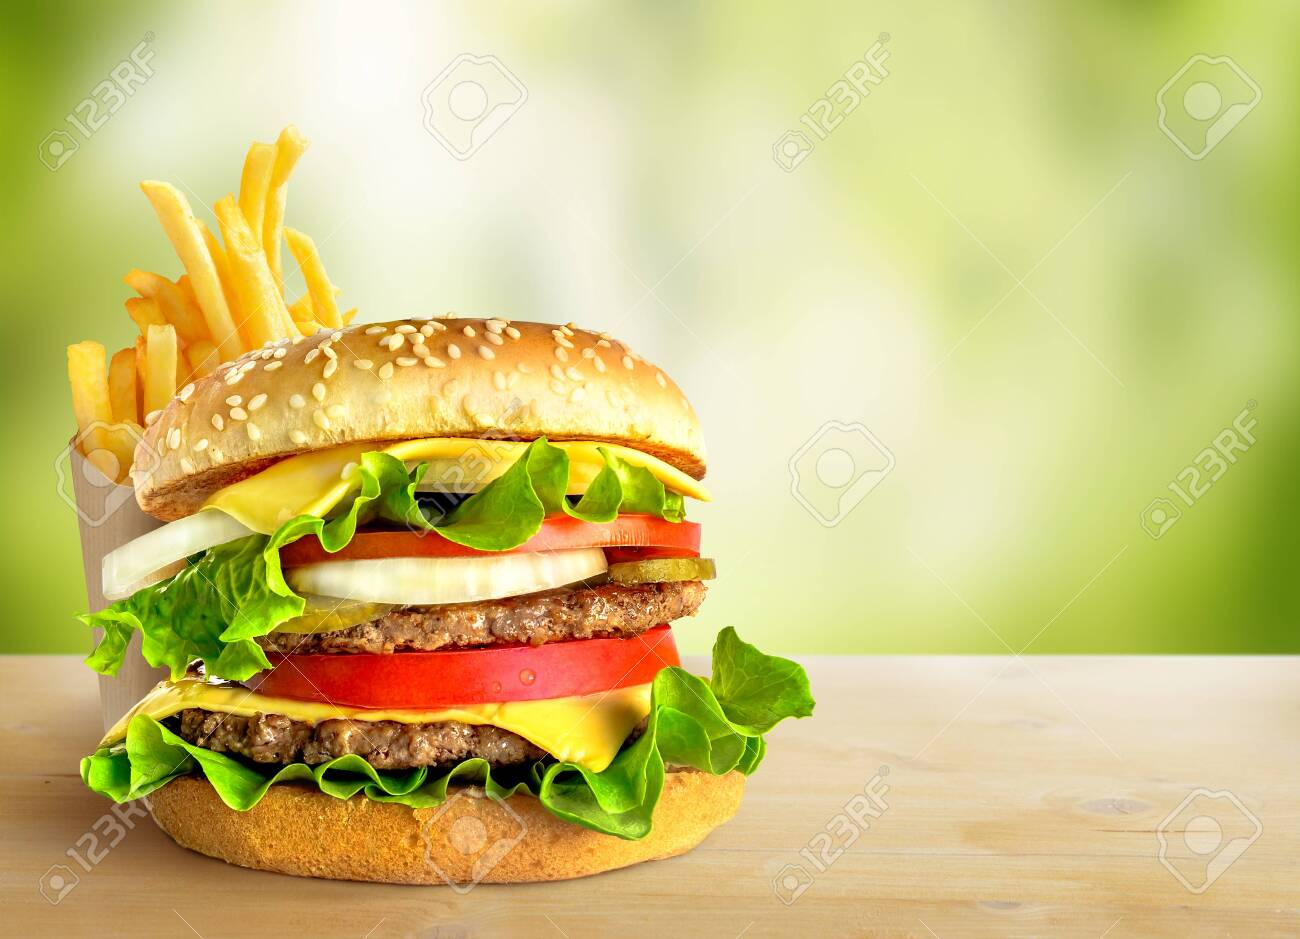 Fresh double hamburger and french fries on green nature background. Copy space - 153909145